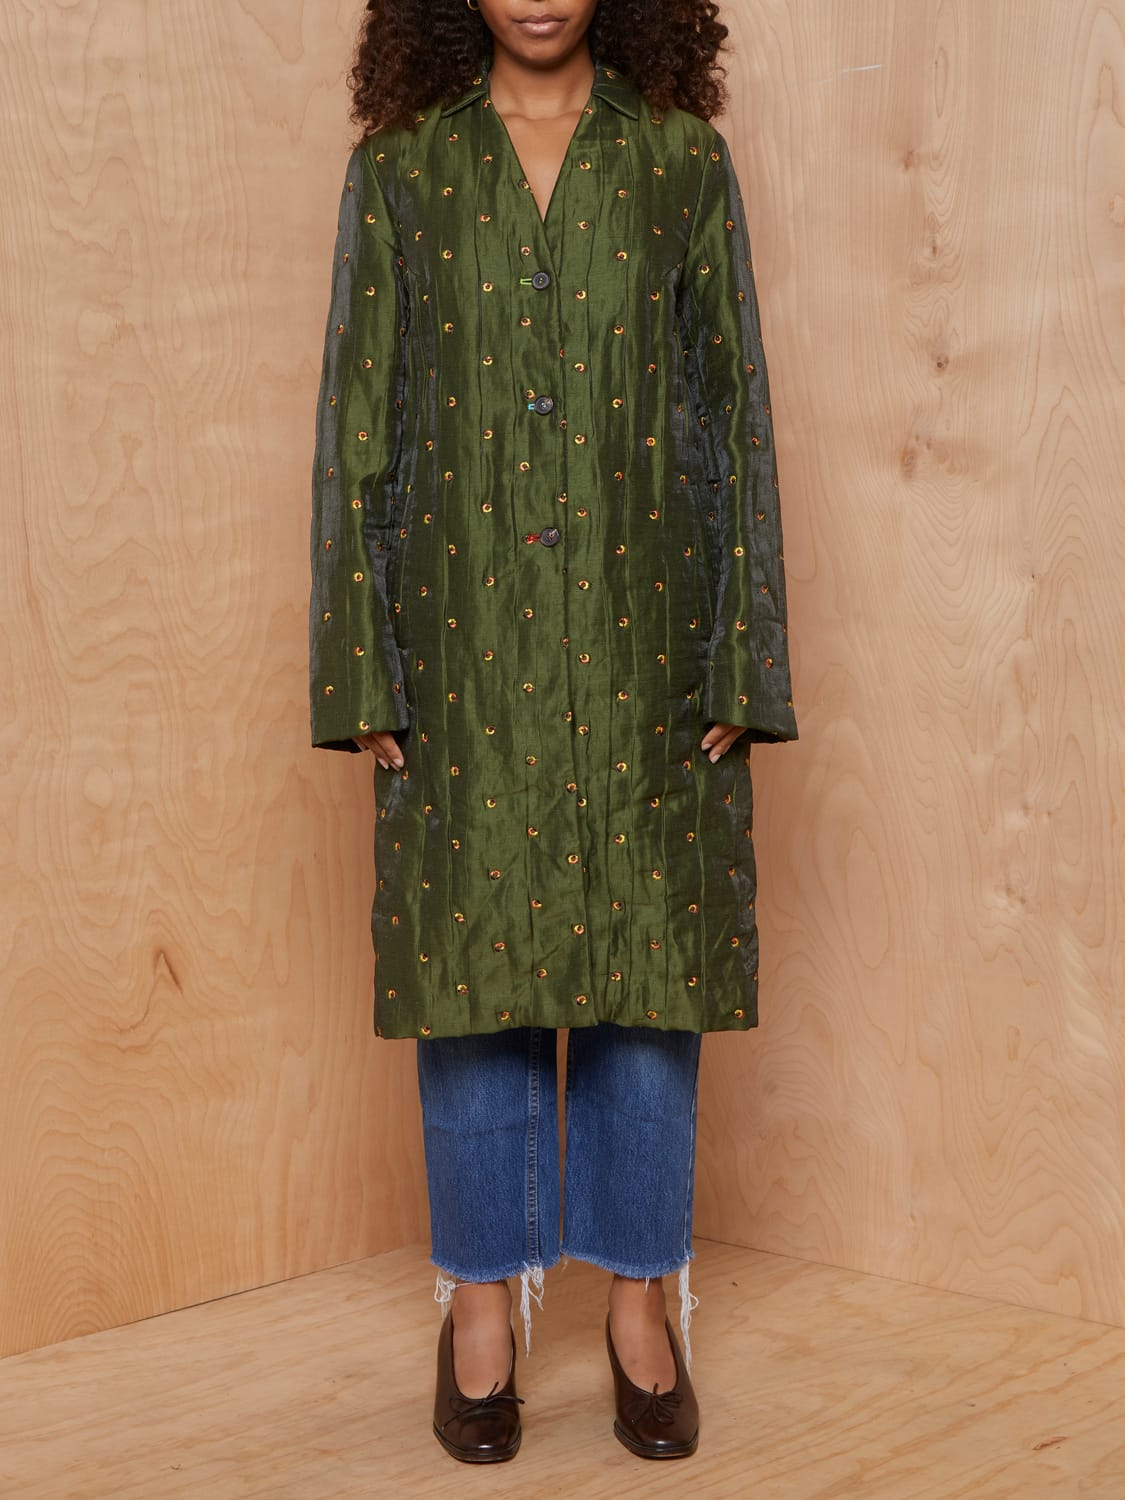 Vintage Irridescent Green Coat with Autumnal Embroidery